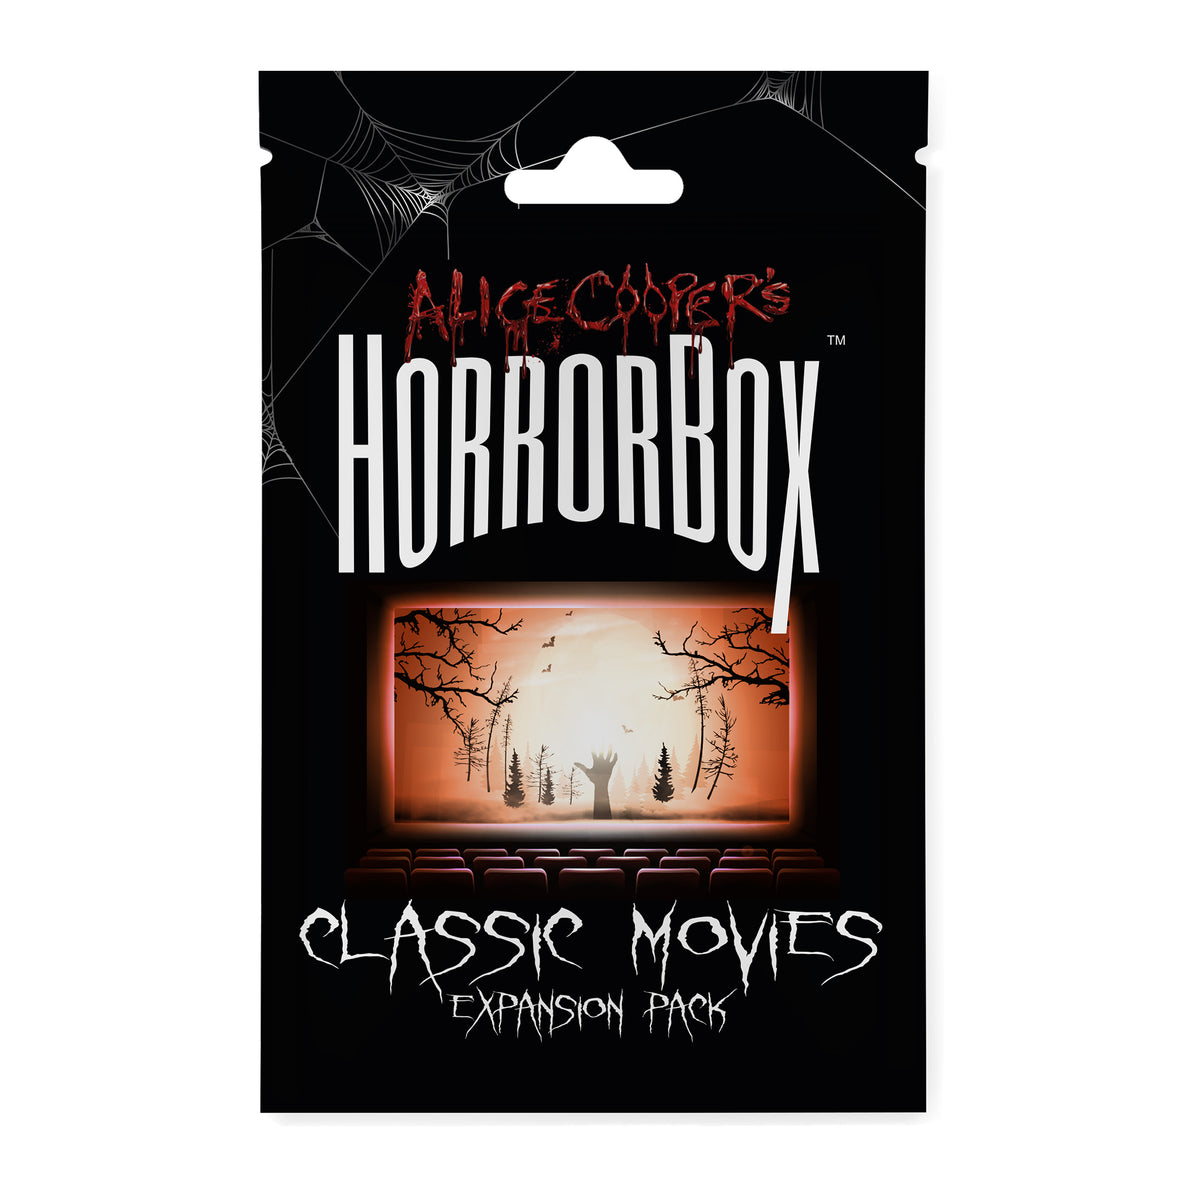 HorrorBox ™ - Classic Movies Expansion Pack